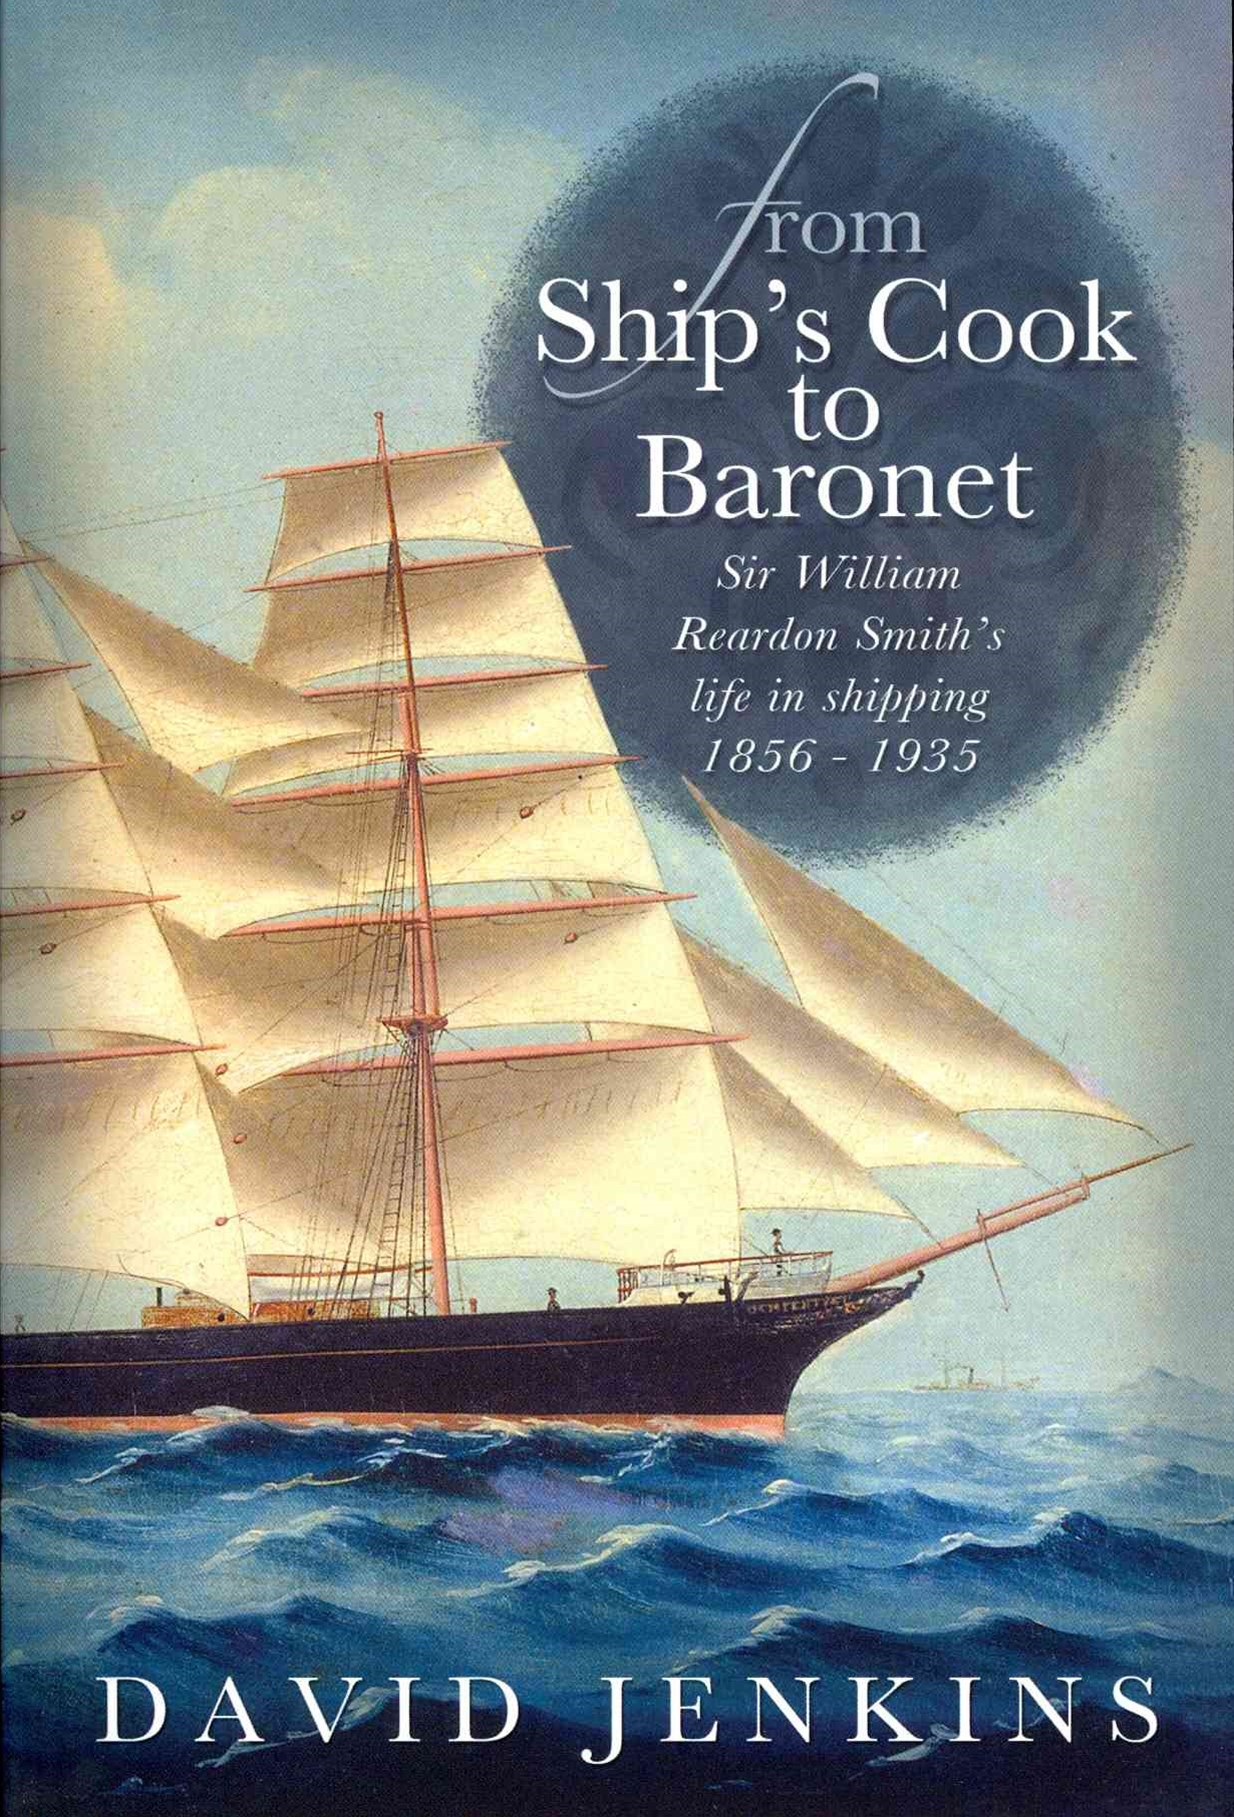 From Ship's Cook to Baronet